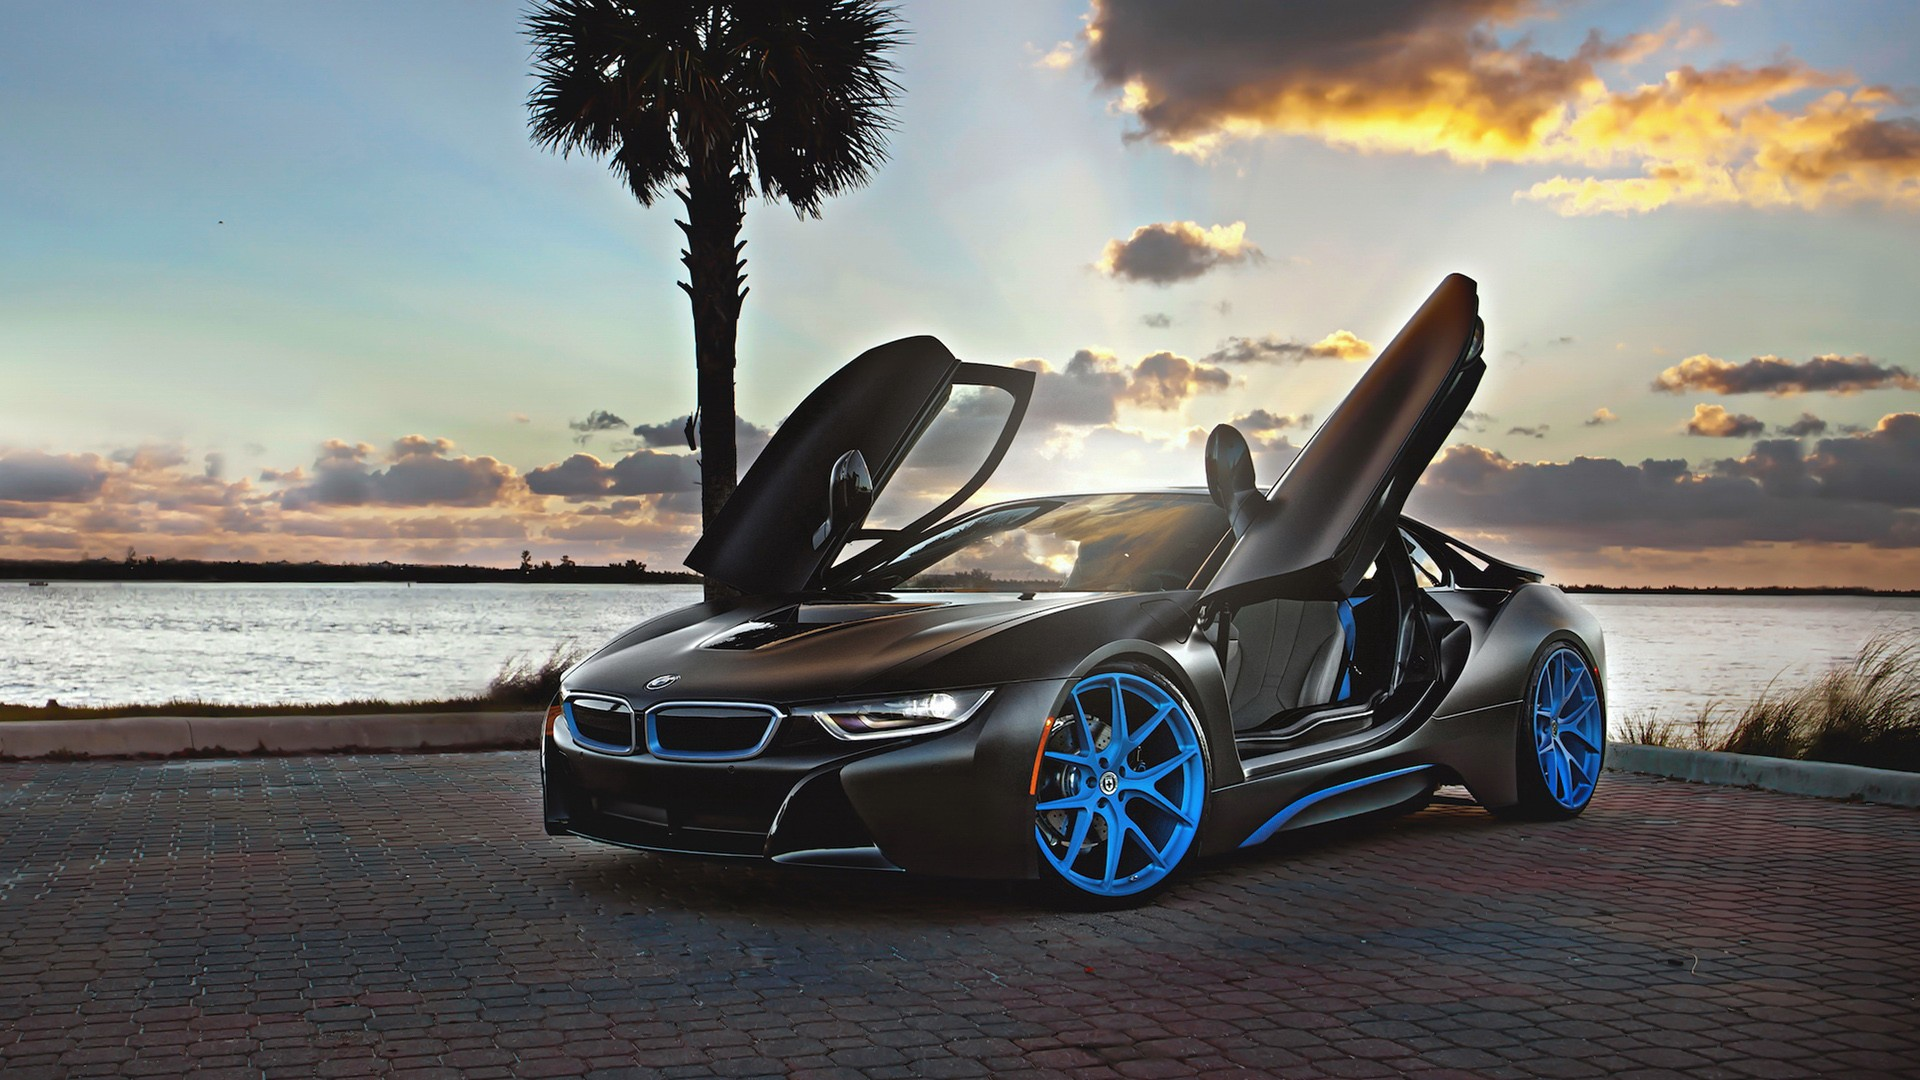 Bmw i8 blue hre wheels Wallpapers besides R8 v12 tdi moreover 2015 Volkswagen Polo Review moreover Junkyard Find 1987 Subaru Xt Gl also Ford Edge 2018 Detail Interior. on infiniti turbo